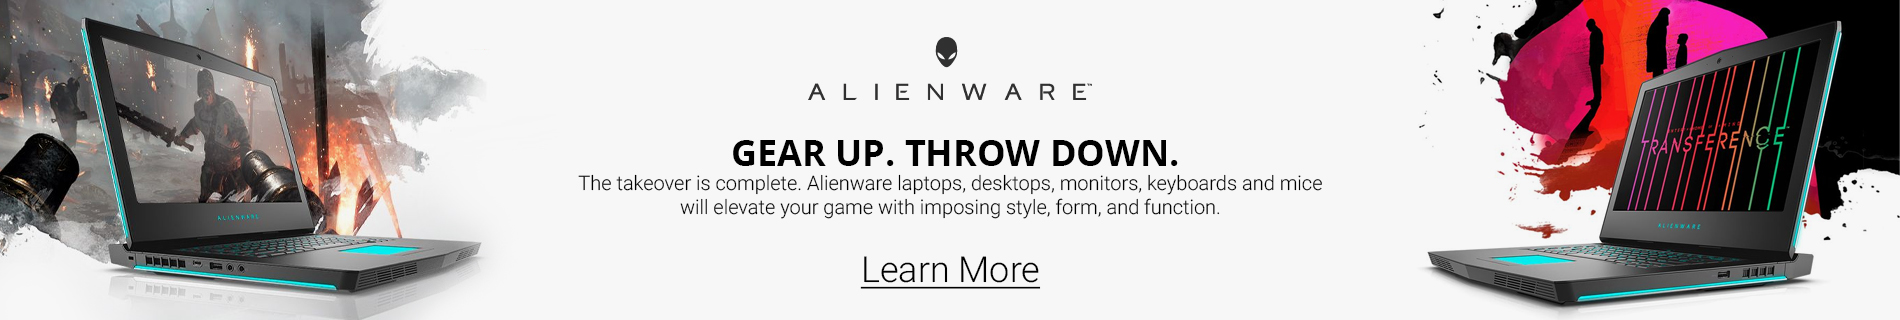 Dell Gaming Landing Page Janrevamp Alienware Footer